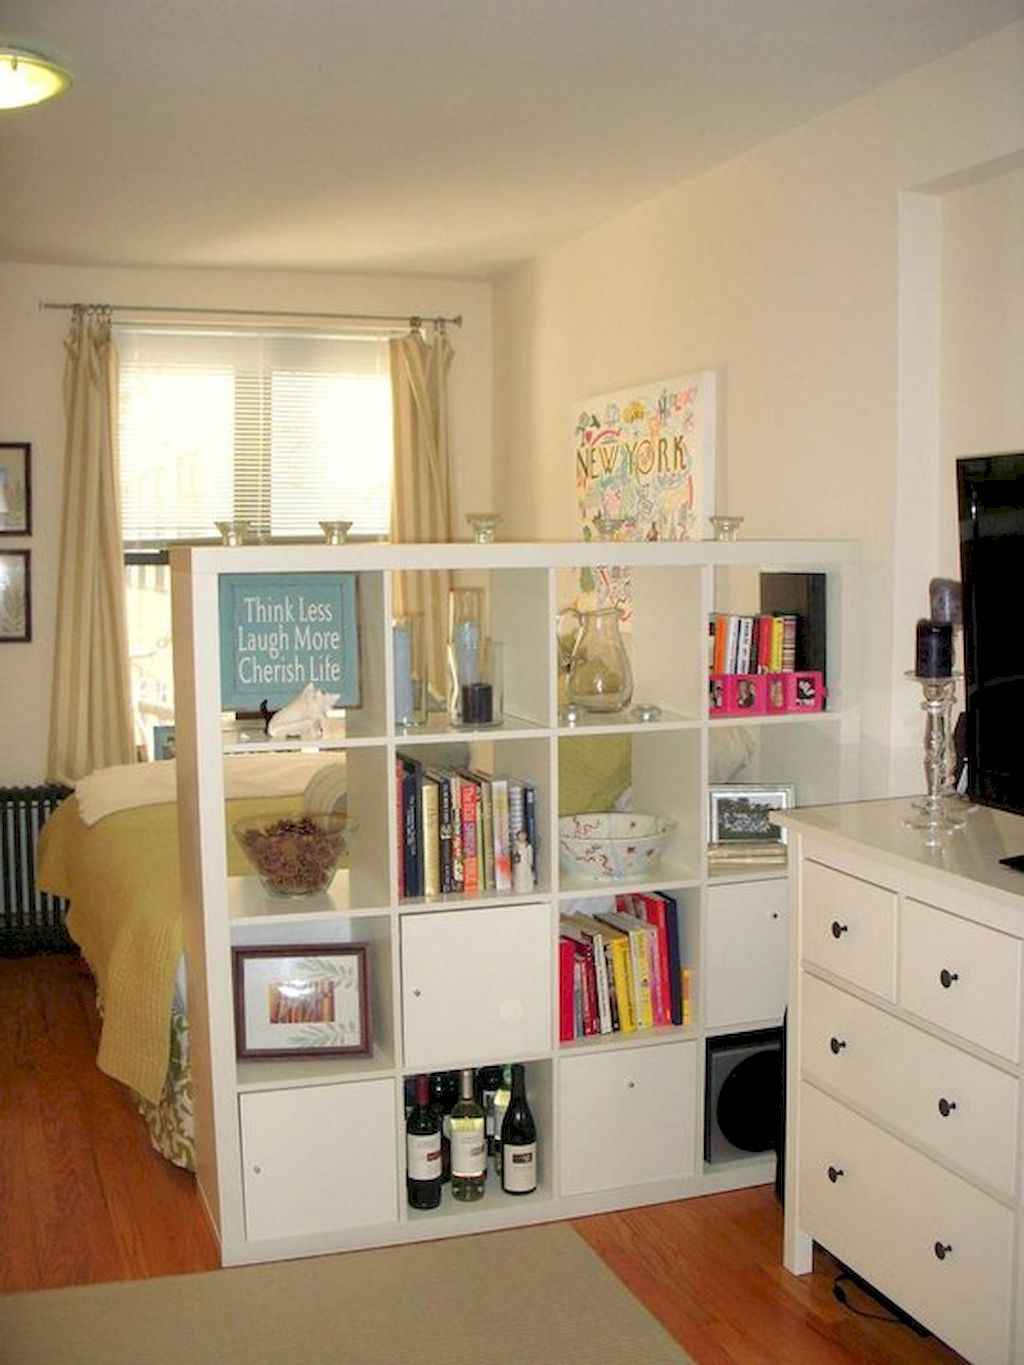 Cool small apartment decorating ideas on a budget (23)